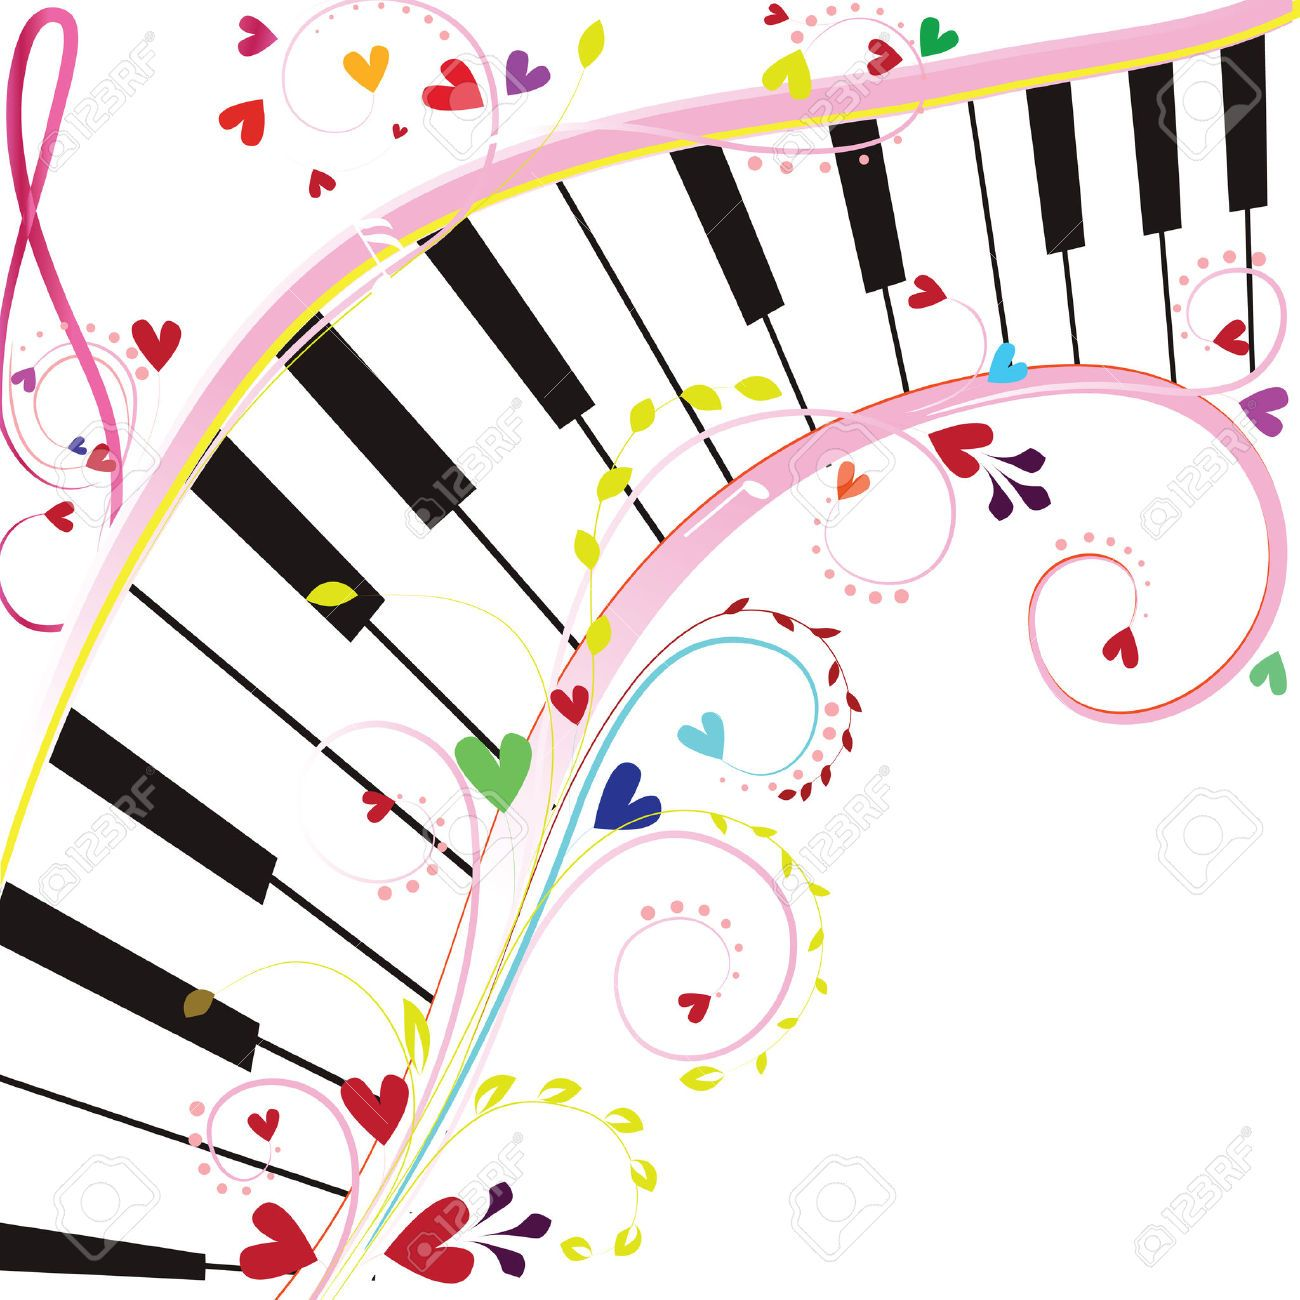 Piano clipart musique. Symbol stock vector illustration